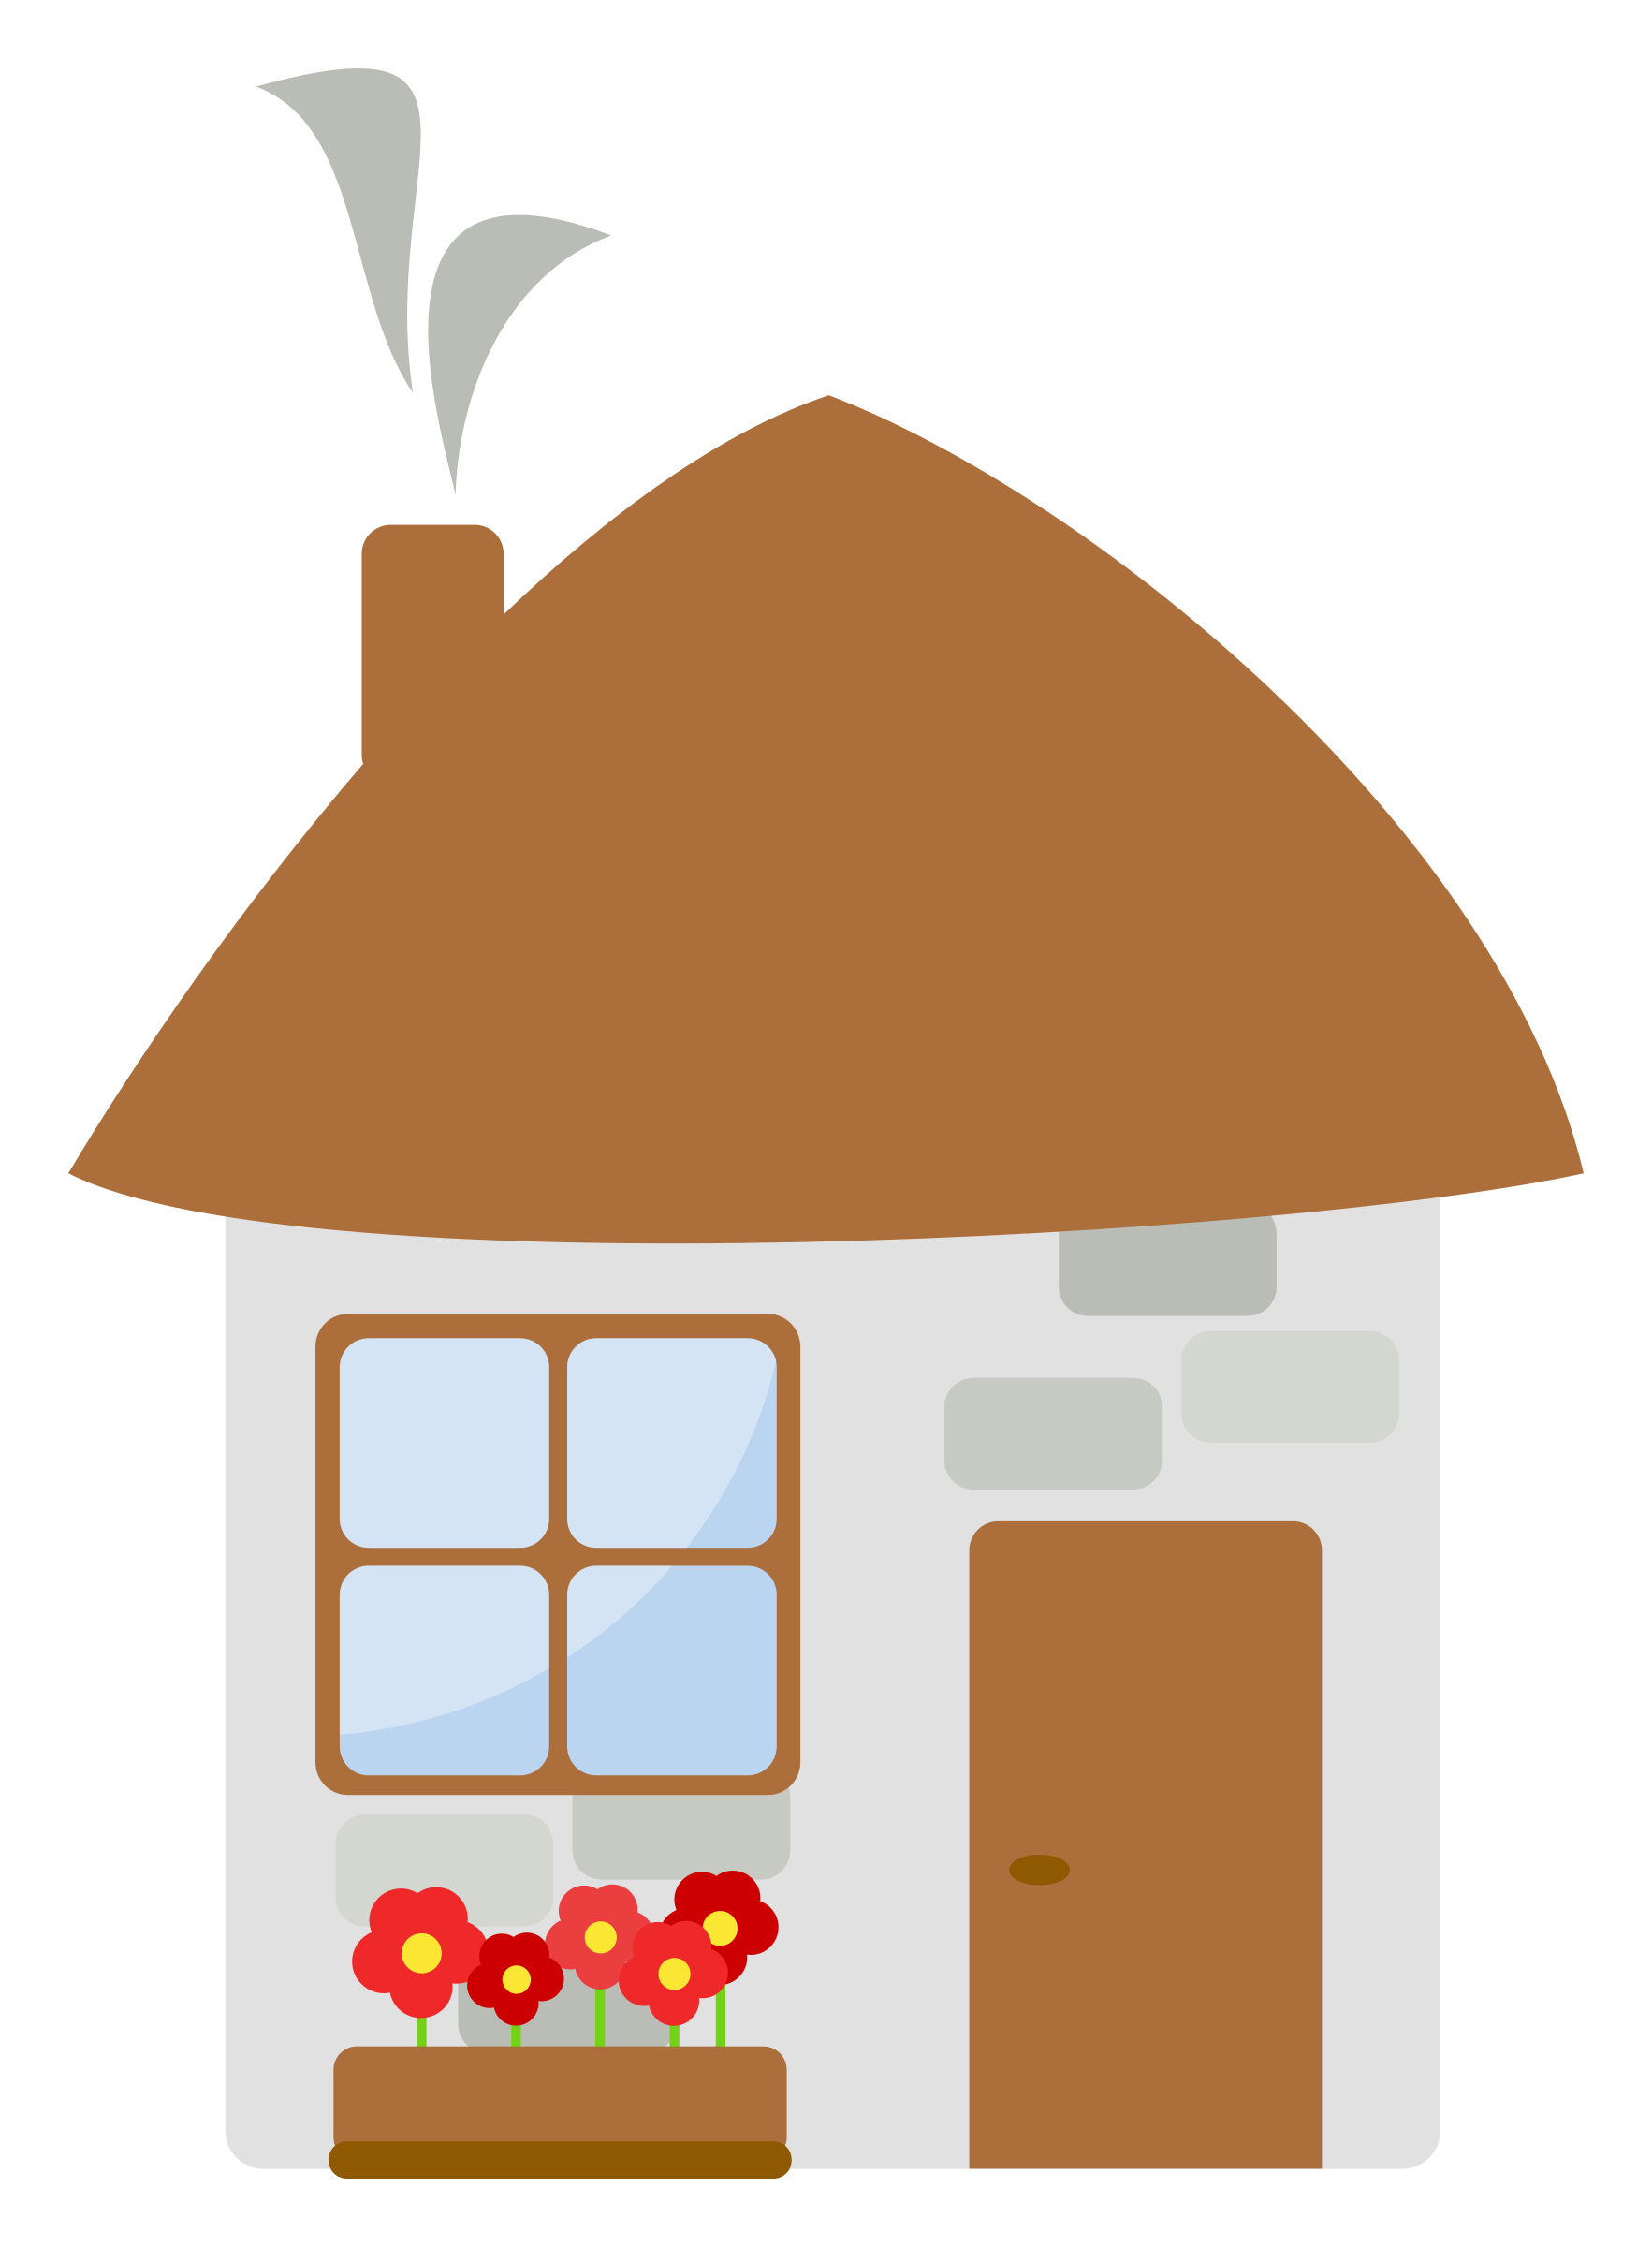 Little house clipart clip art free library Clipart - Little House clip art free library